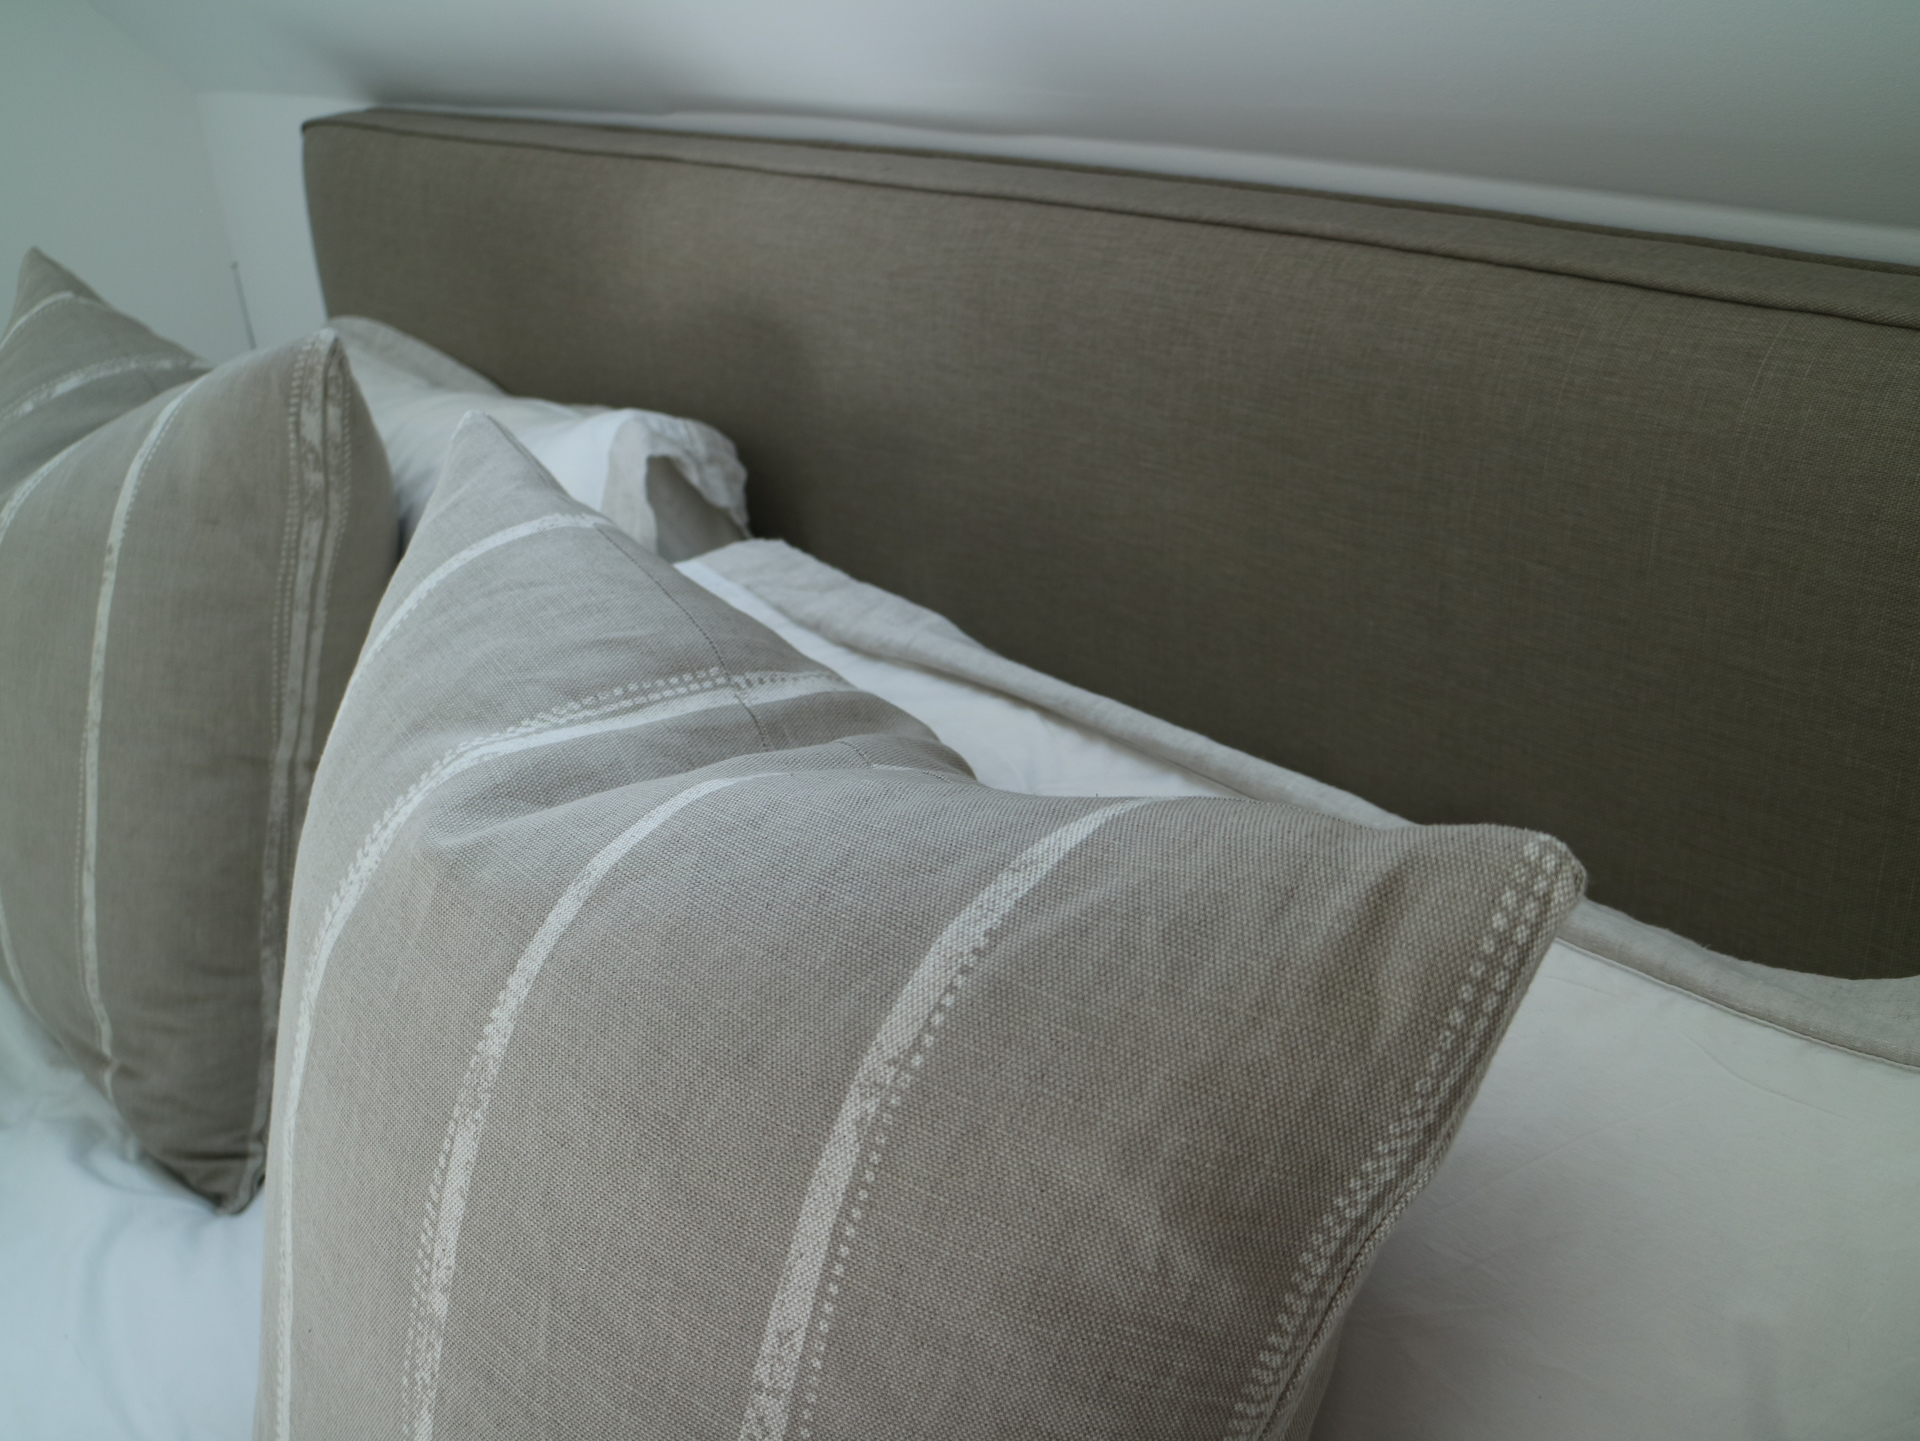 handmade headboard and cushions in natural linen by Ian mankin